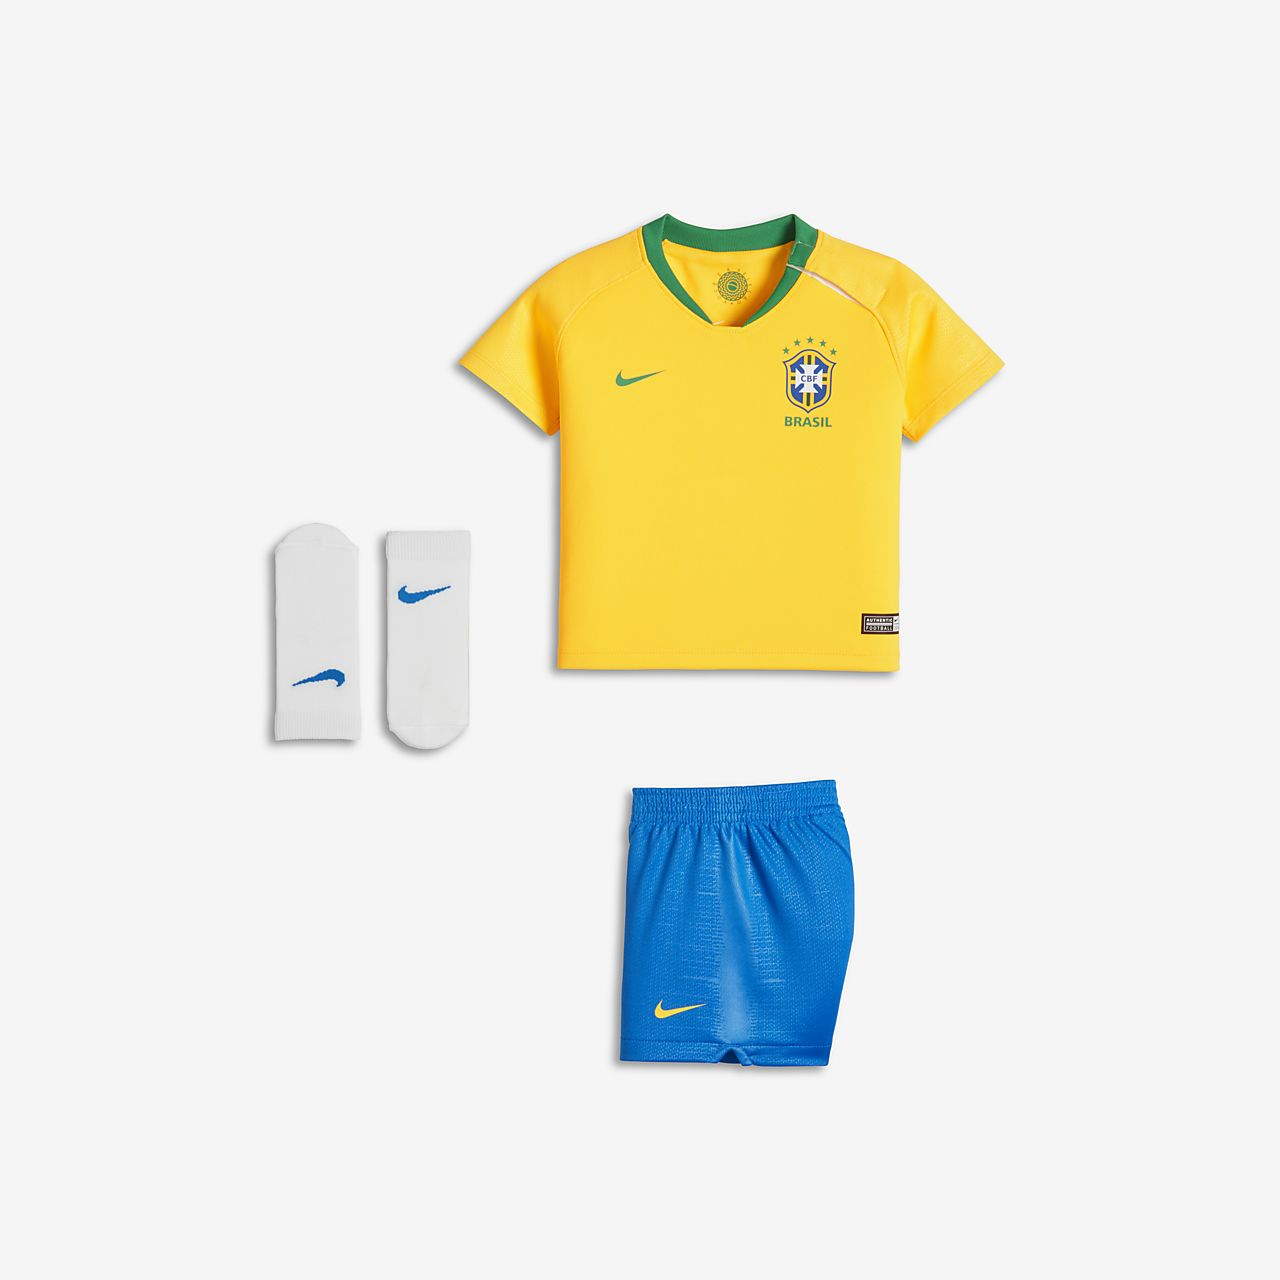 2018 Brazil CBF Stadium Home Baby & Toddler Football Kit